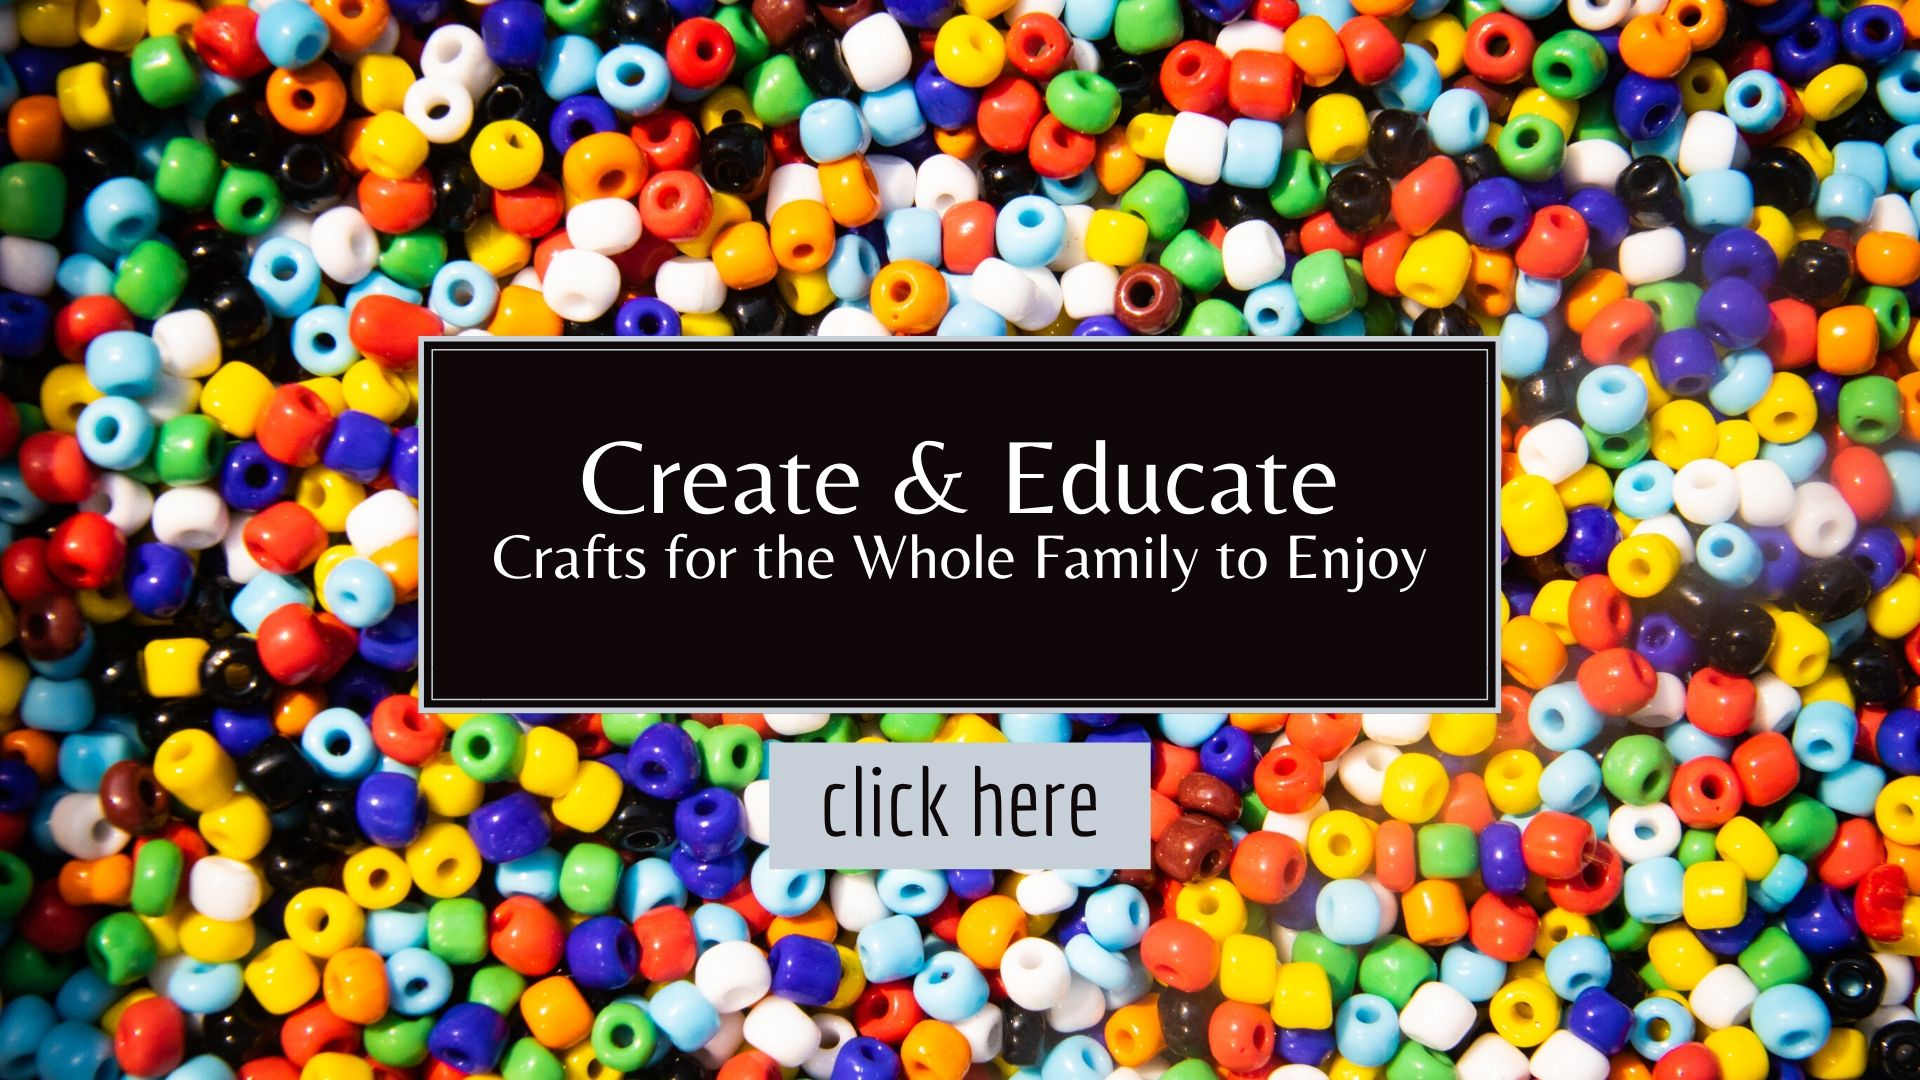 Create and Educate Grapghic Website